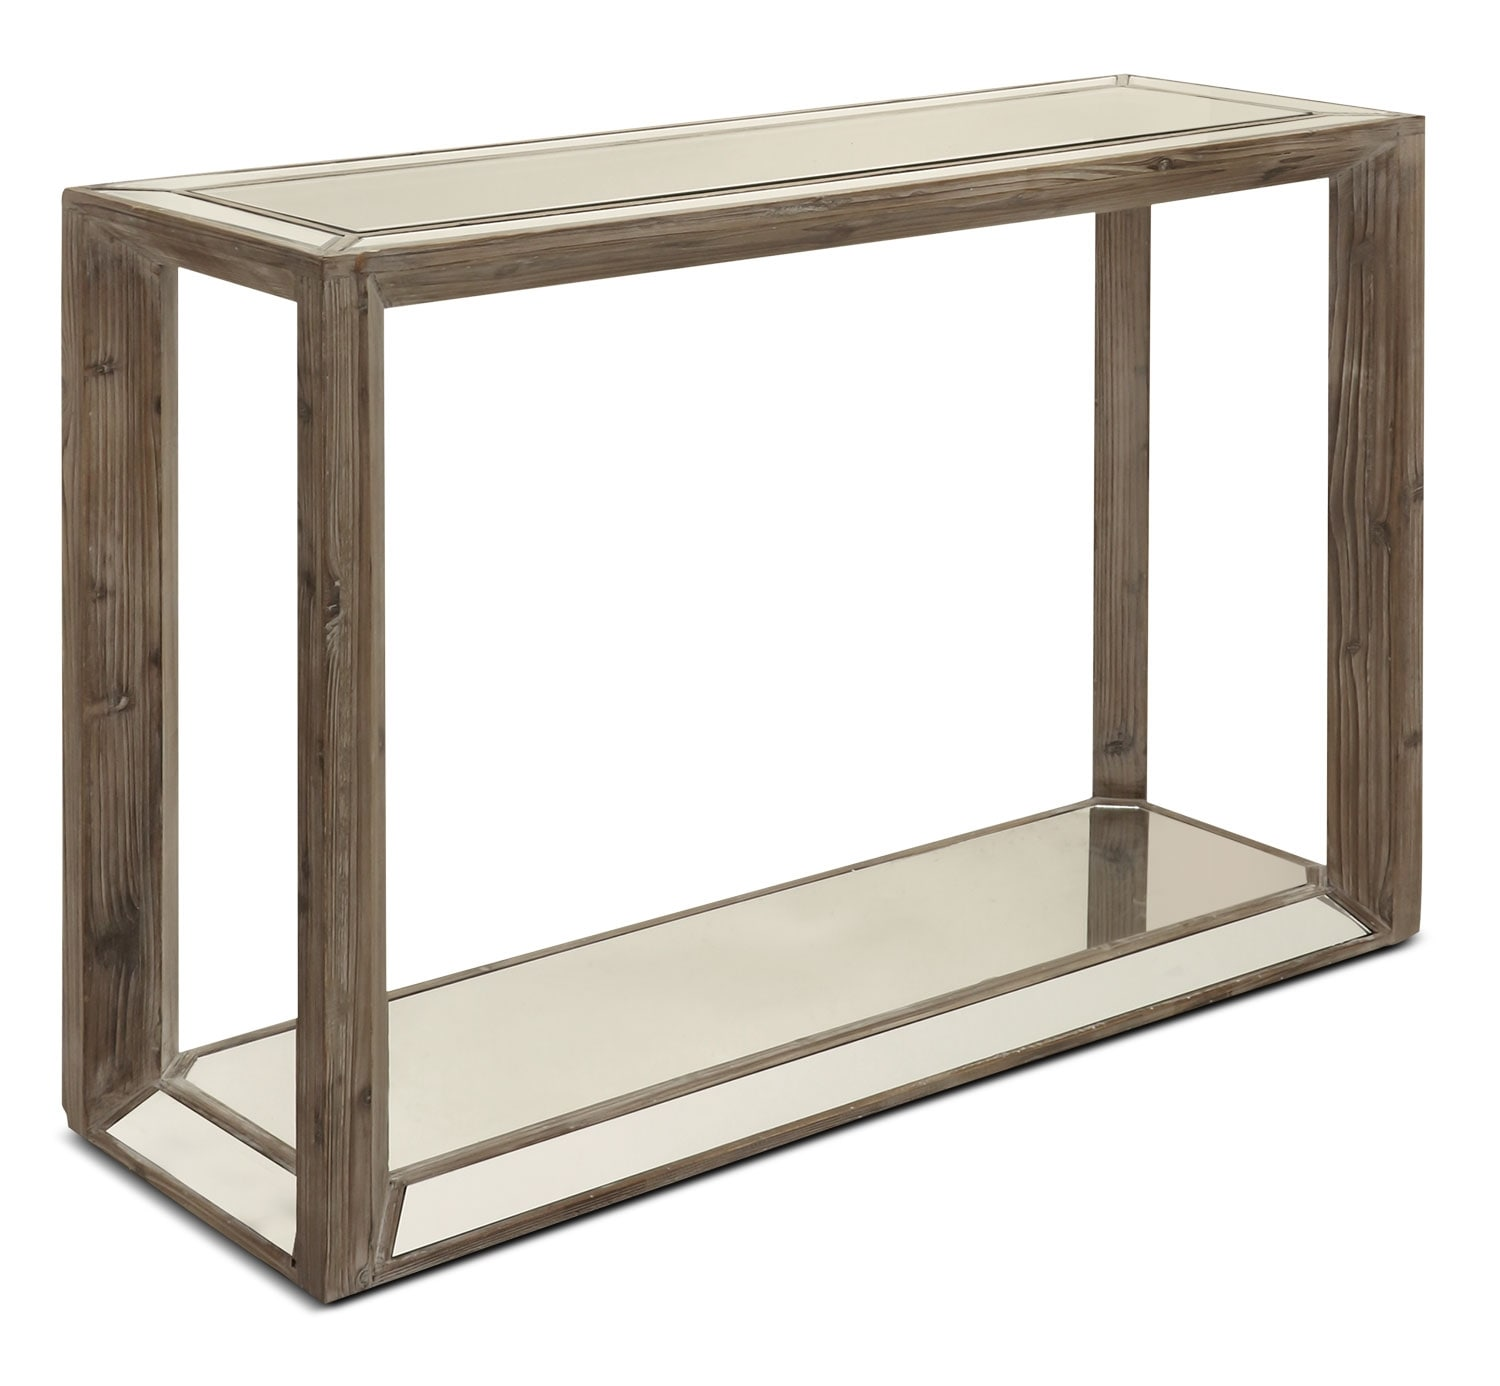 Adena Sofa Table